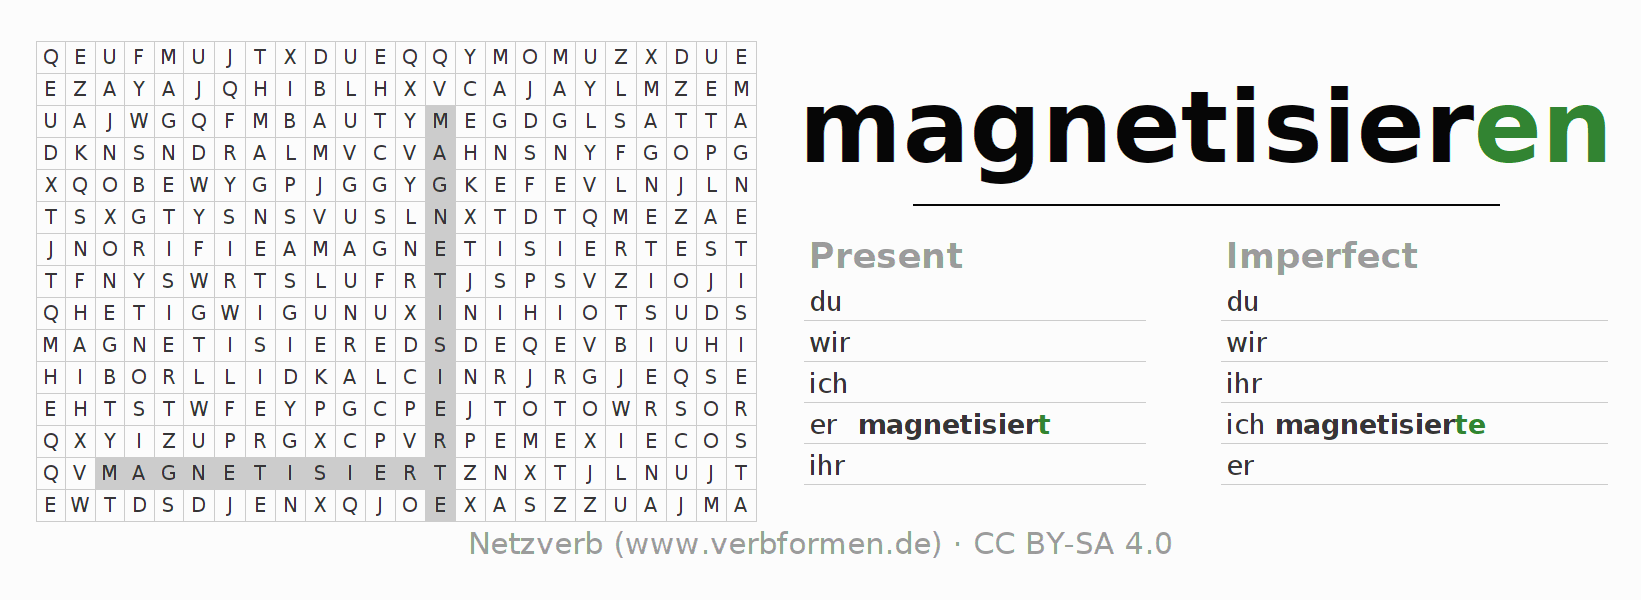 Word search puzzle for the conjugation of the verb magnetisieren